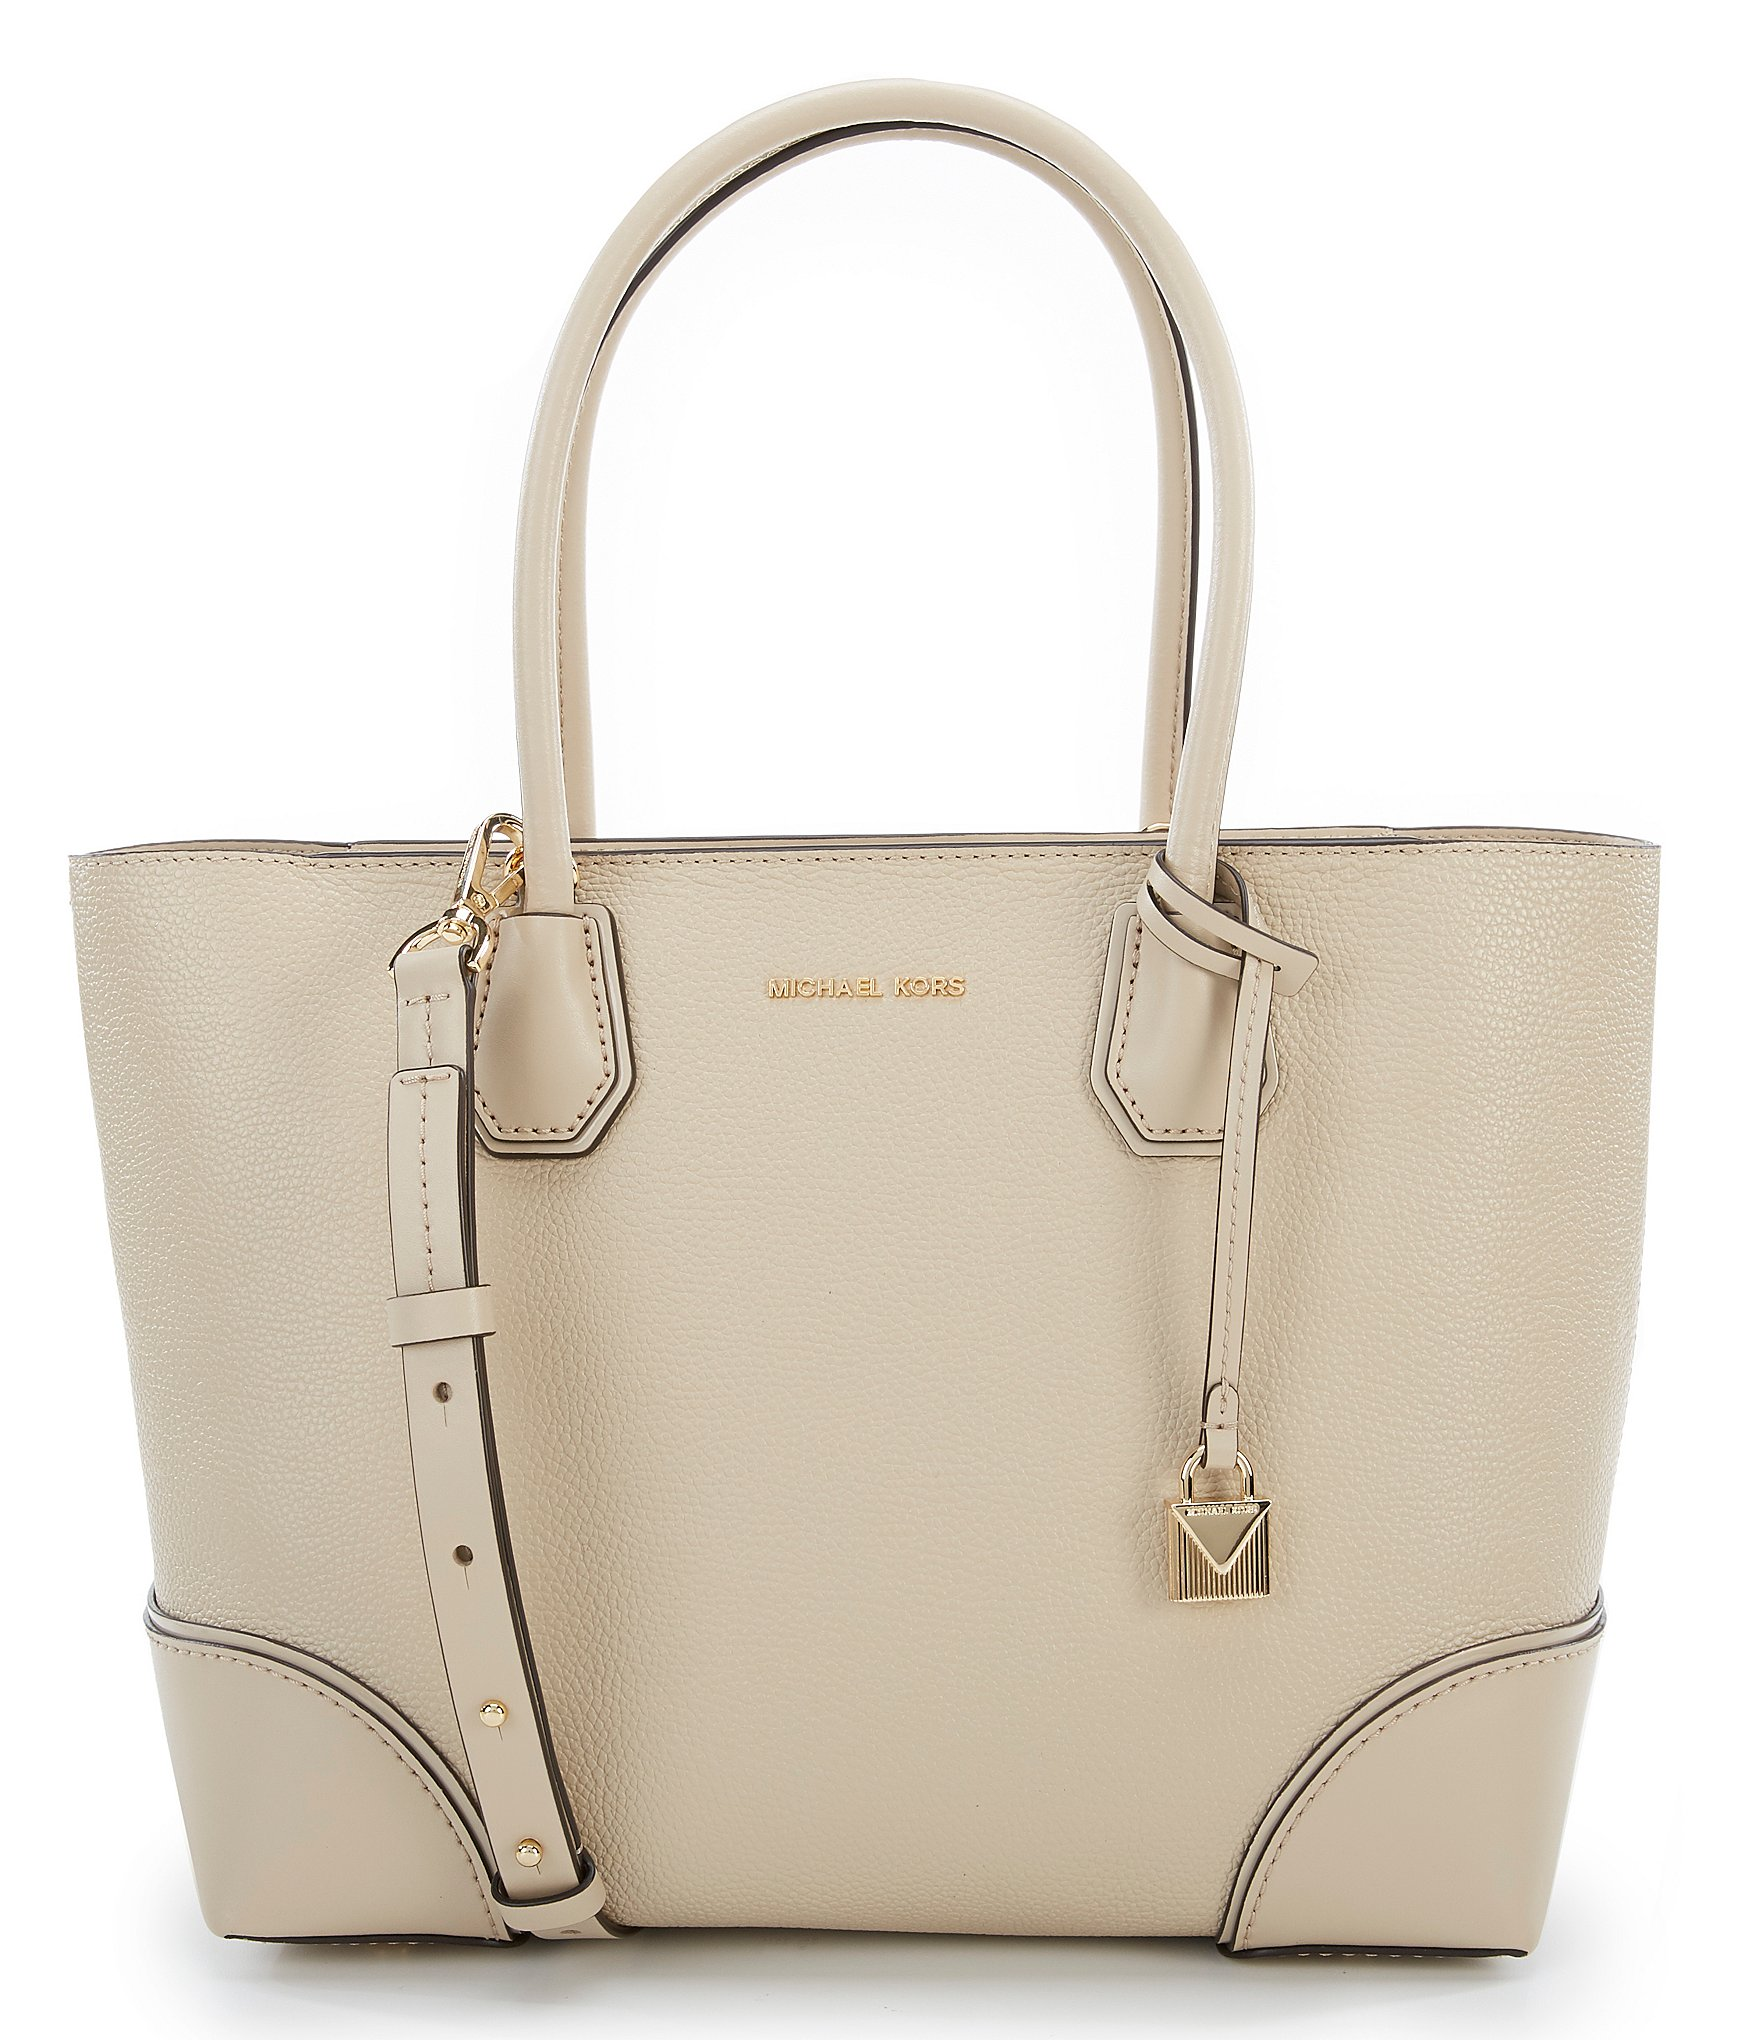 ccc5afbdc334 Dillards Michael Kors Handbags Clearance | Stanford Center for ...